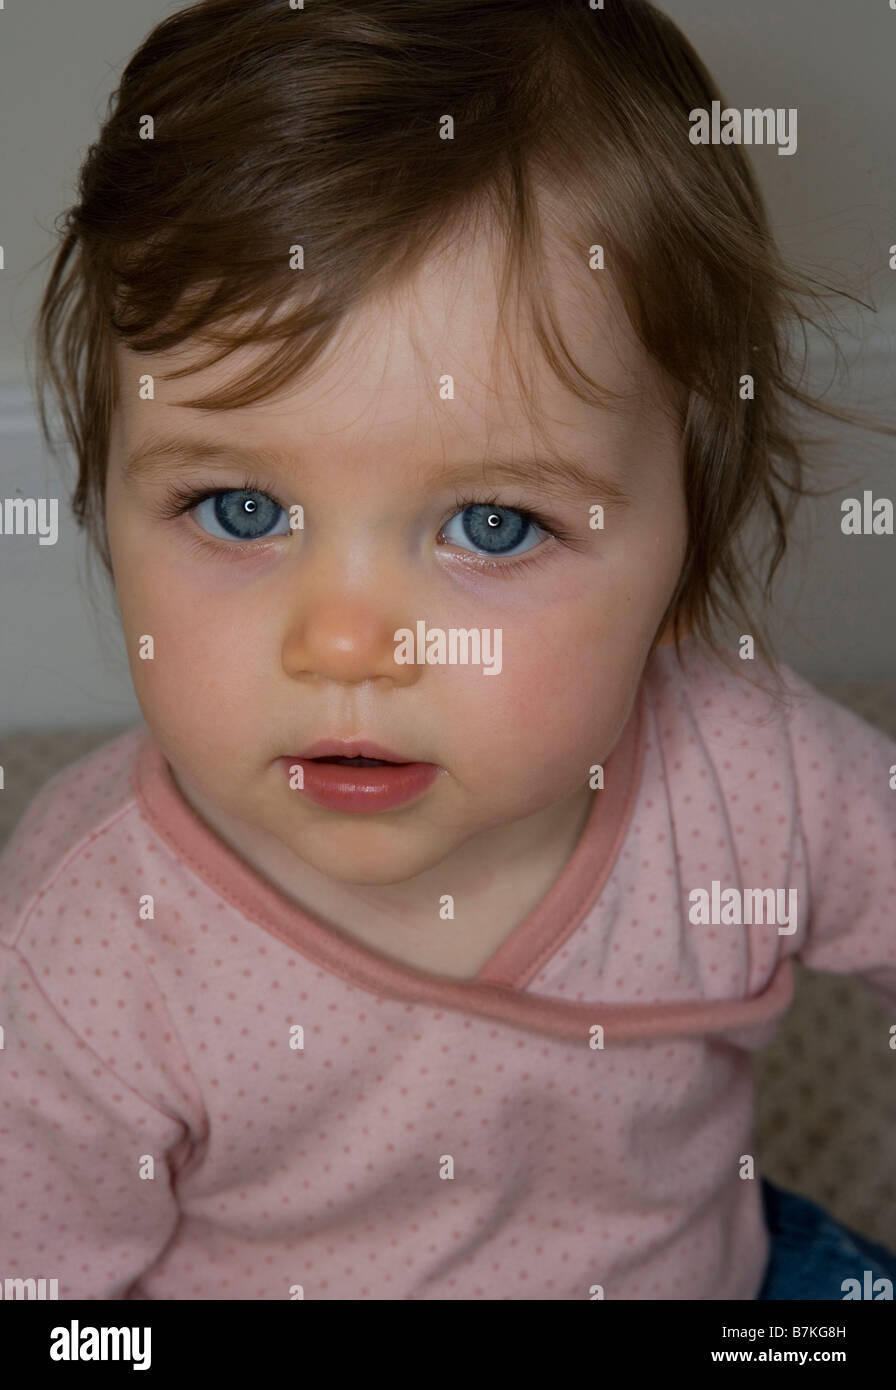 a baby girl with bright blue eyes stock photo royalty